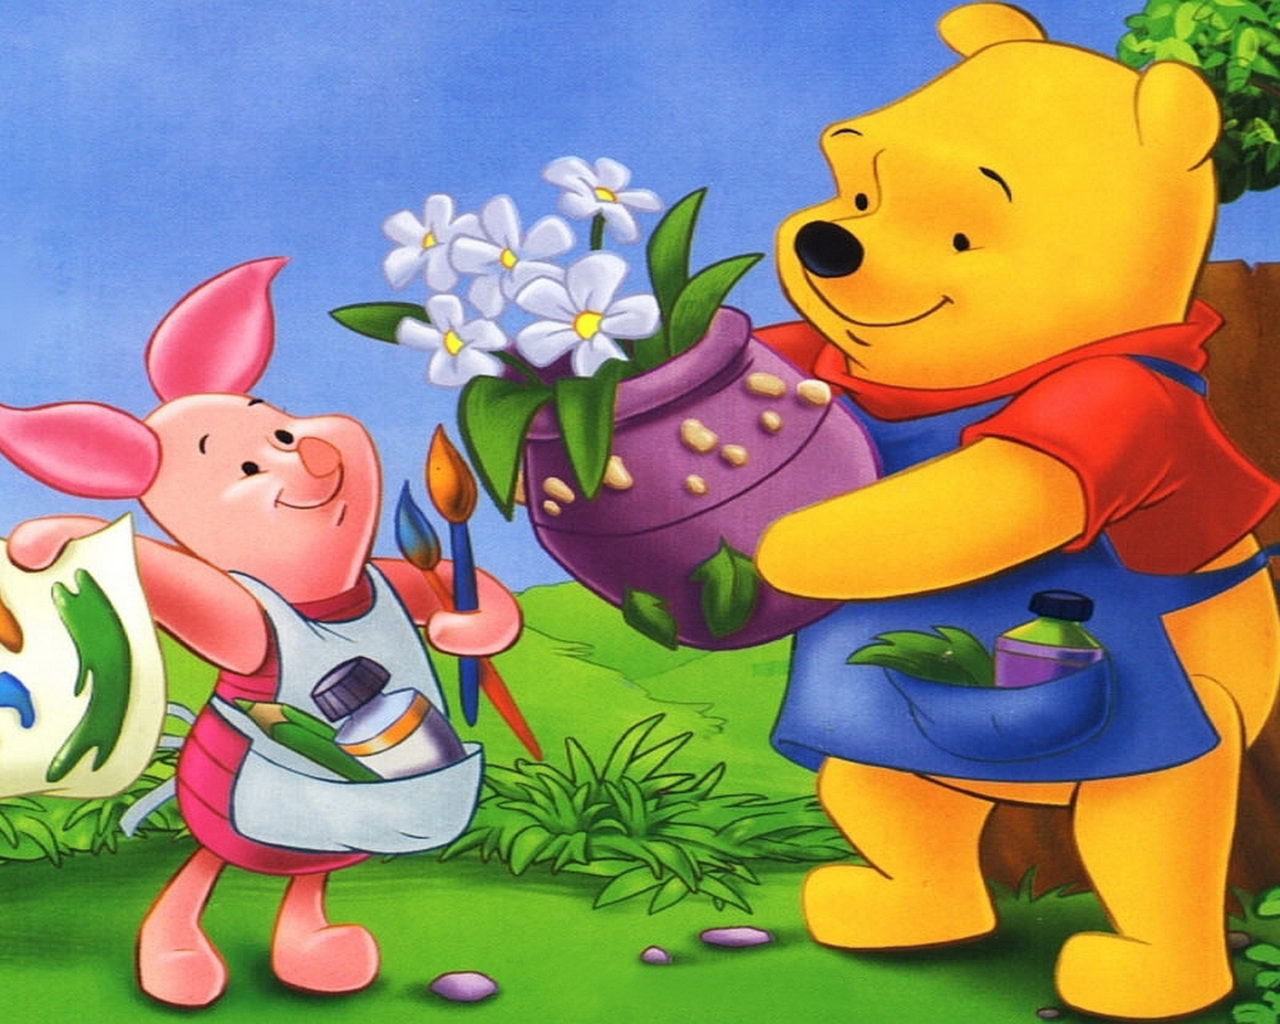 Hd Disney Cartoon Wallpapers Winnie The Pooh And Piglet Vase With Flowers Wallpapers Hd